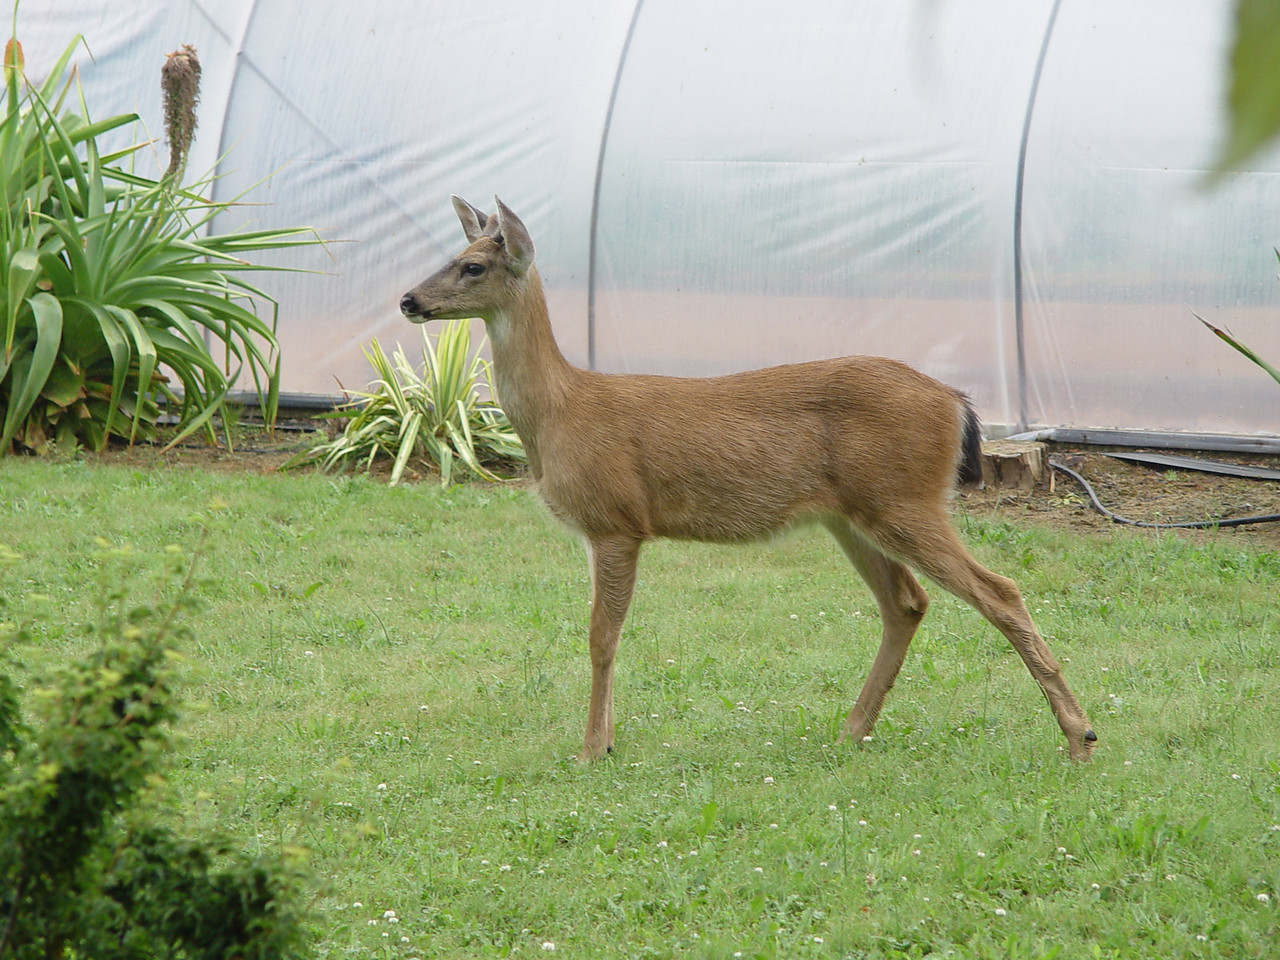 So we had a young deer in the garden on Saturday. Hadn't quite learned that it was supposed to be afraid of people!